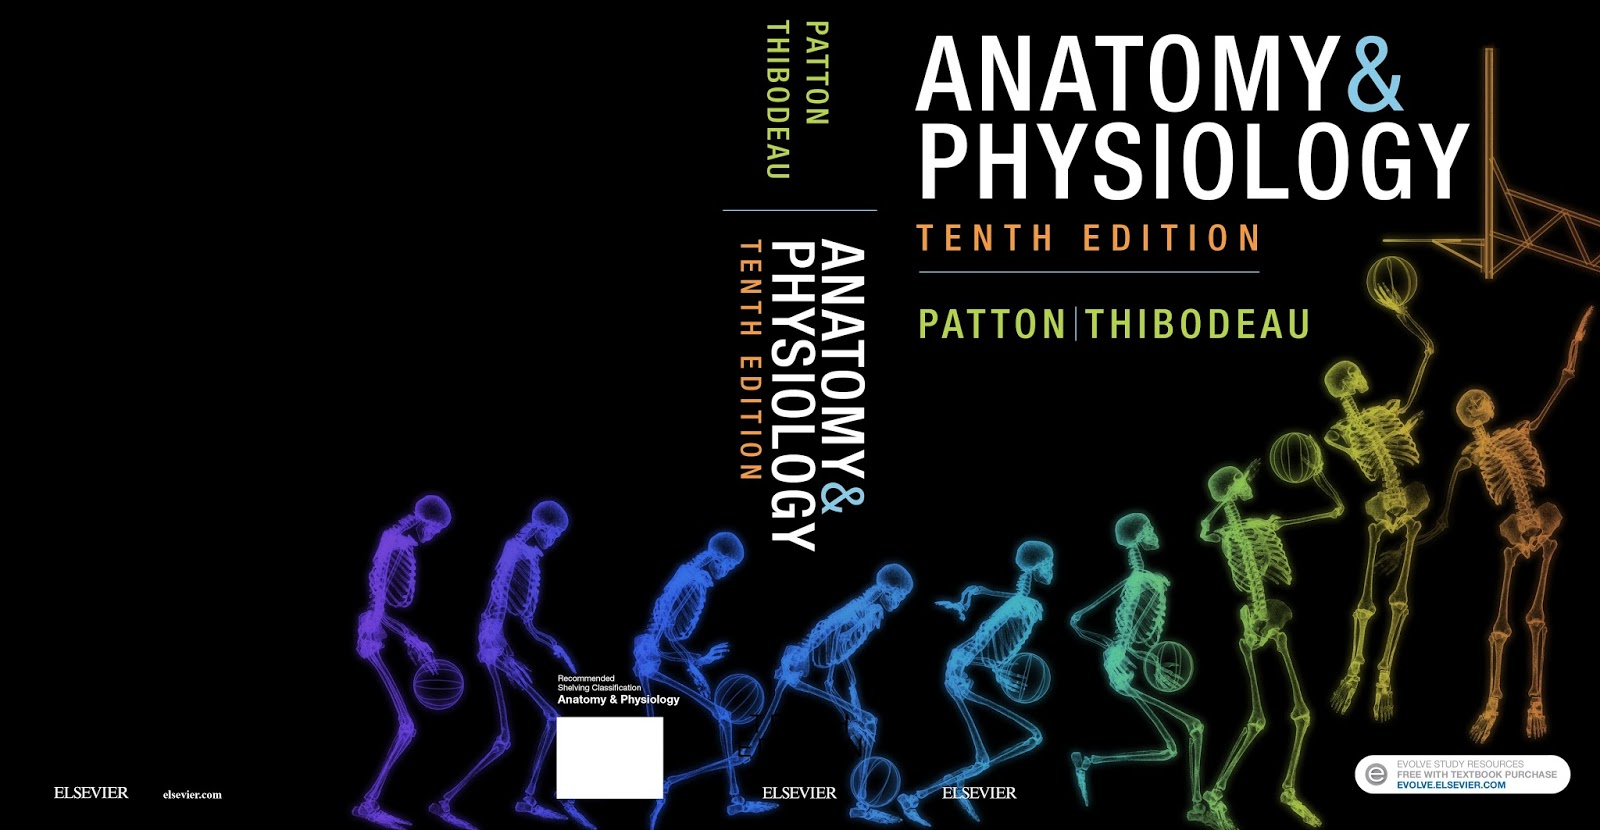 Anatomy & Physiology: New 10th Edition of Patton\'s A&P textbook is ...